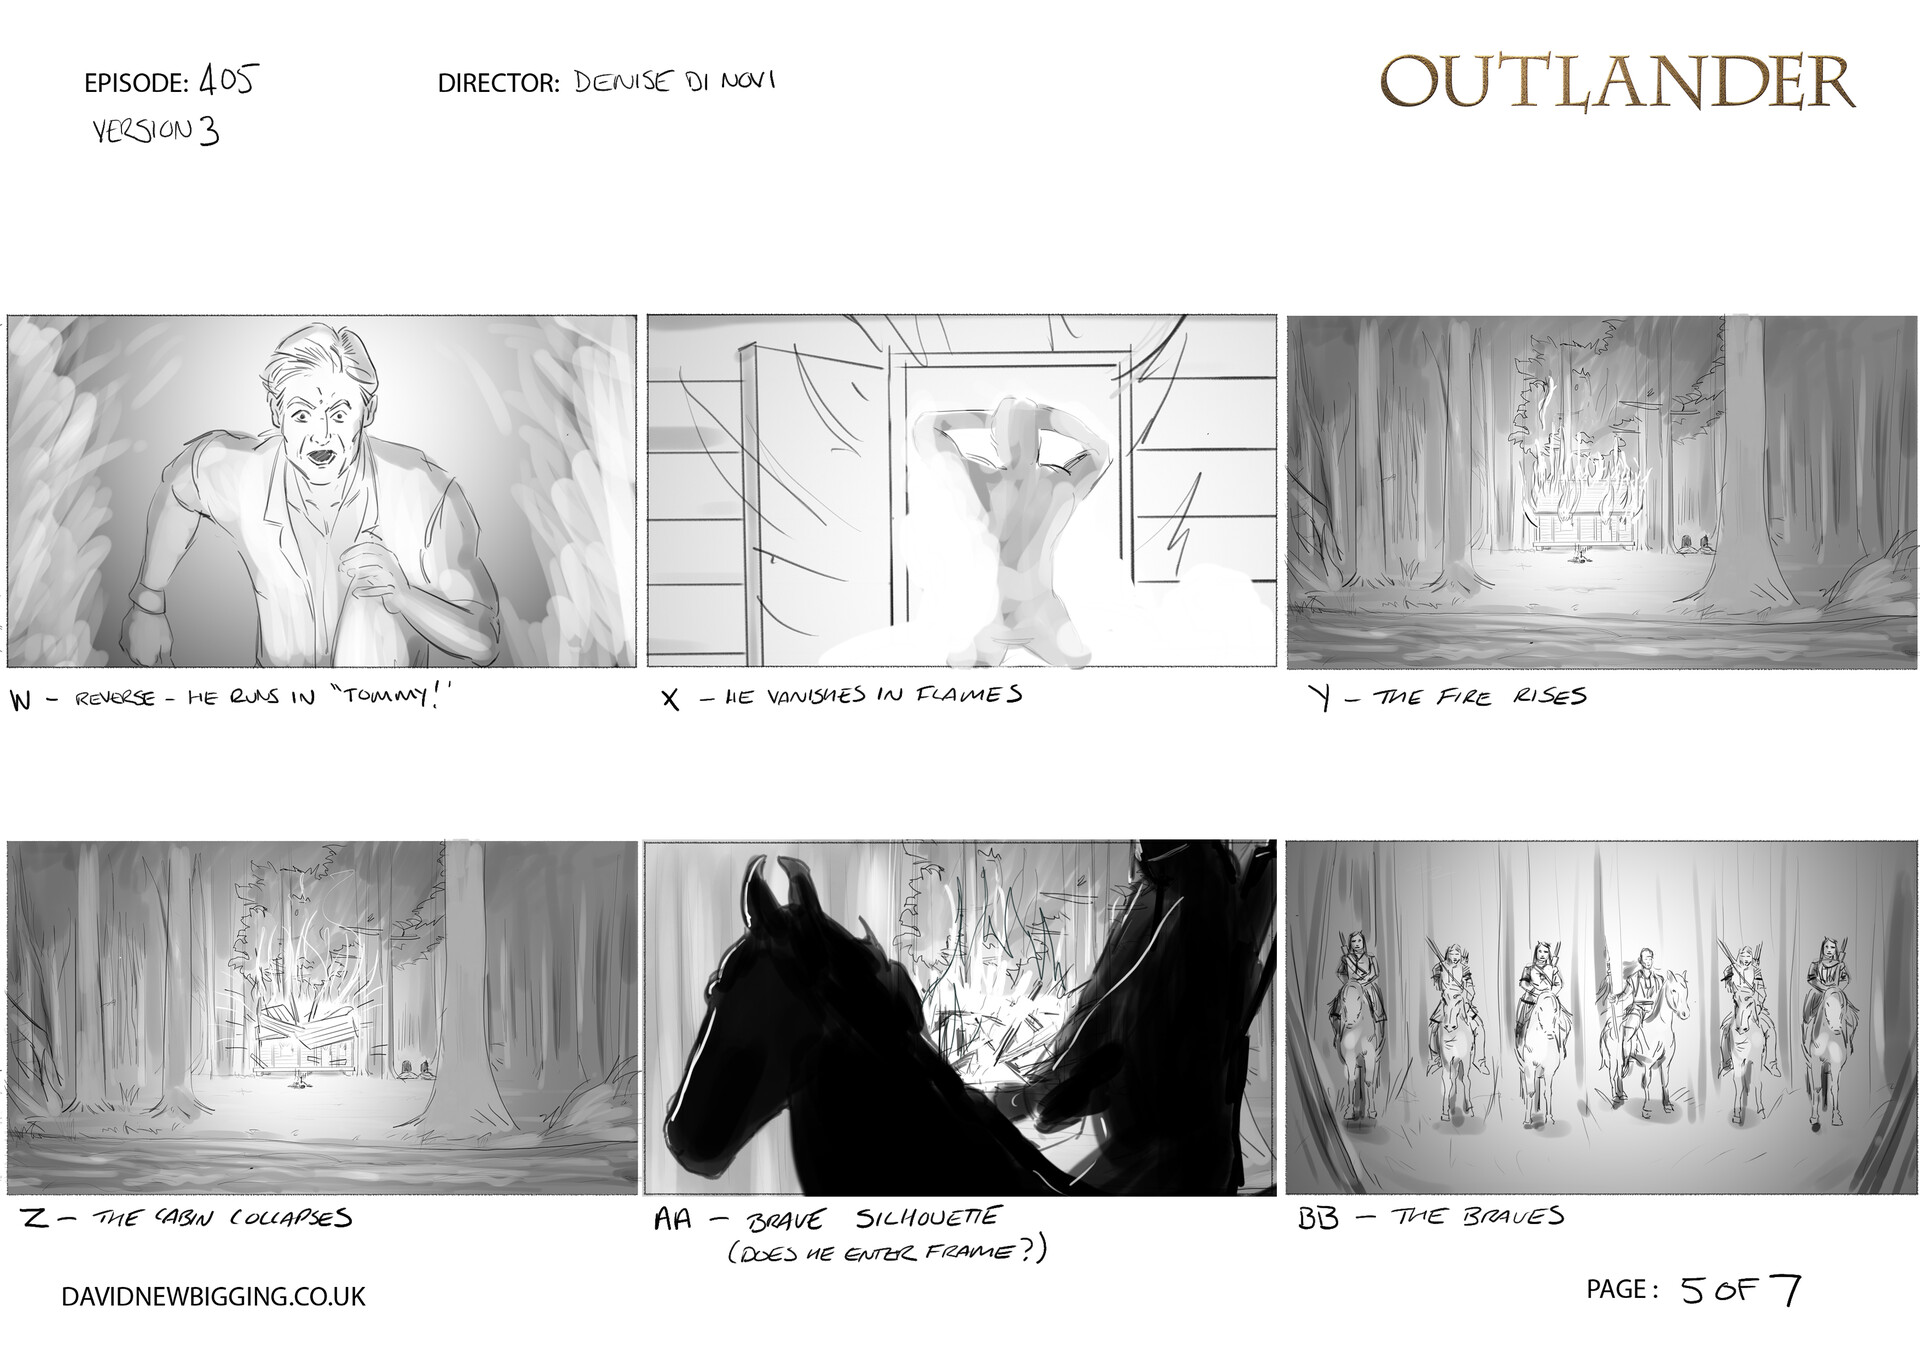 David newbigging outlander 405 cabin burning sequence storyboards version 3 5